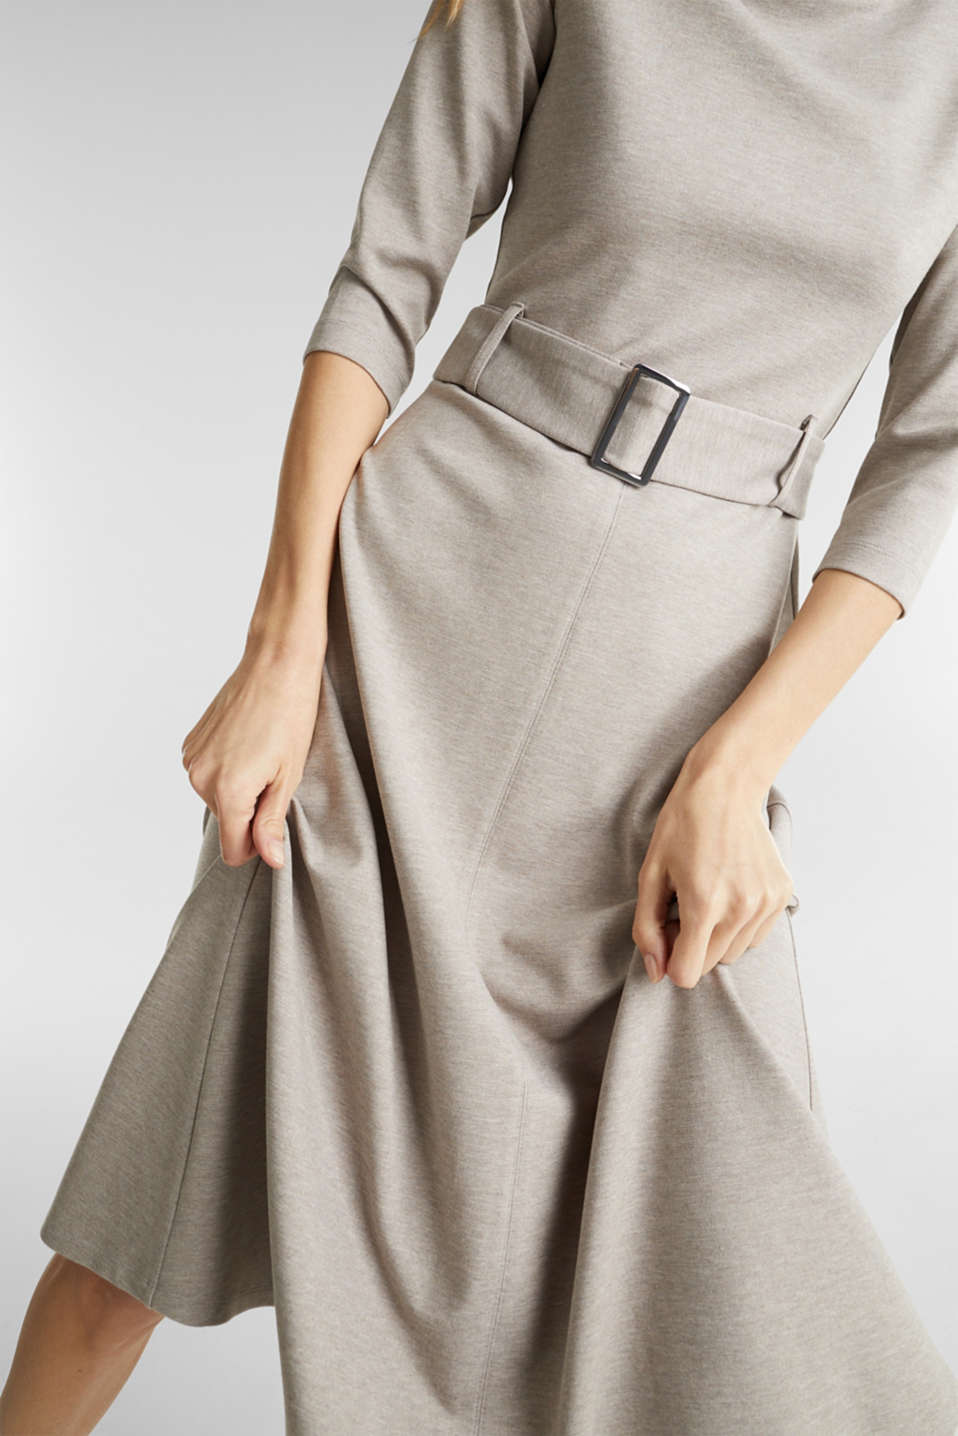 Stretch jersey dress with a belt, LIGHT BEIGE, detail image number 5